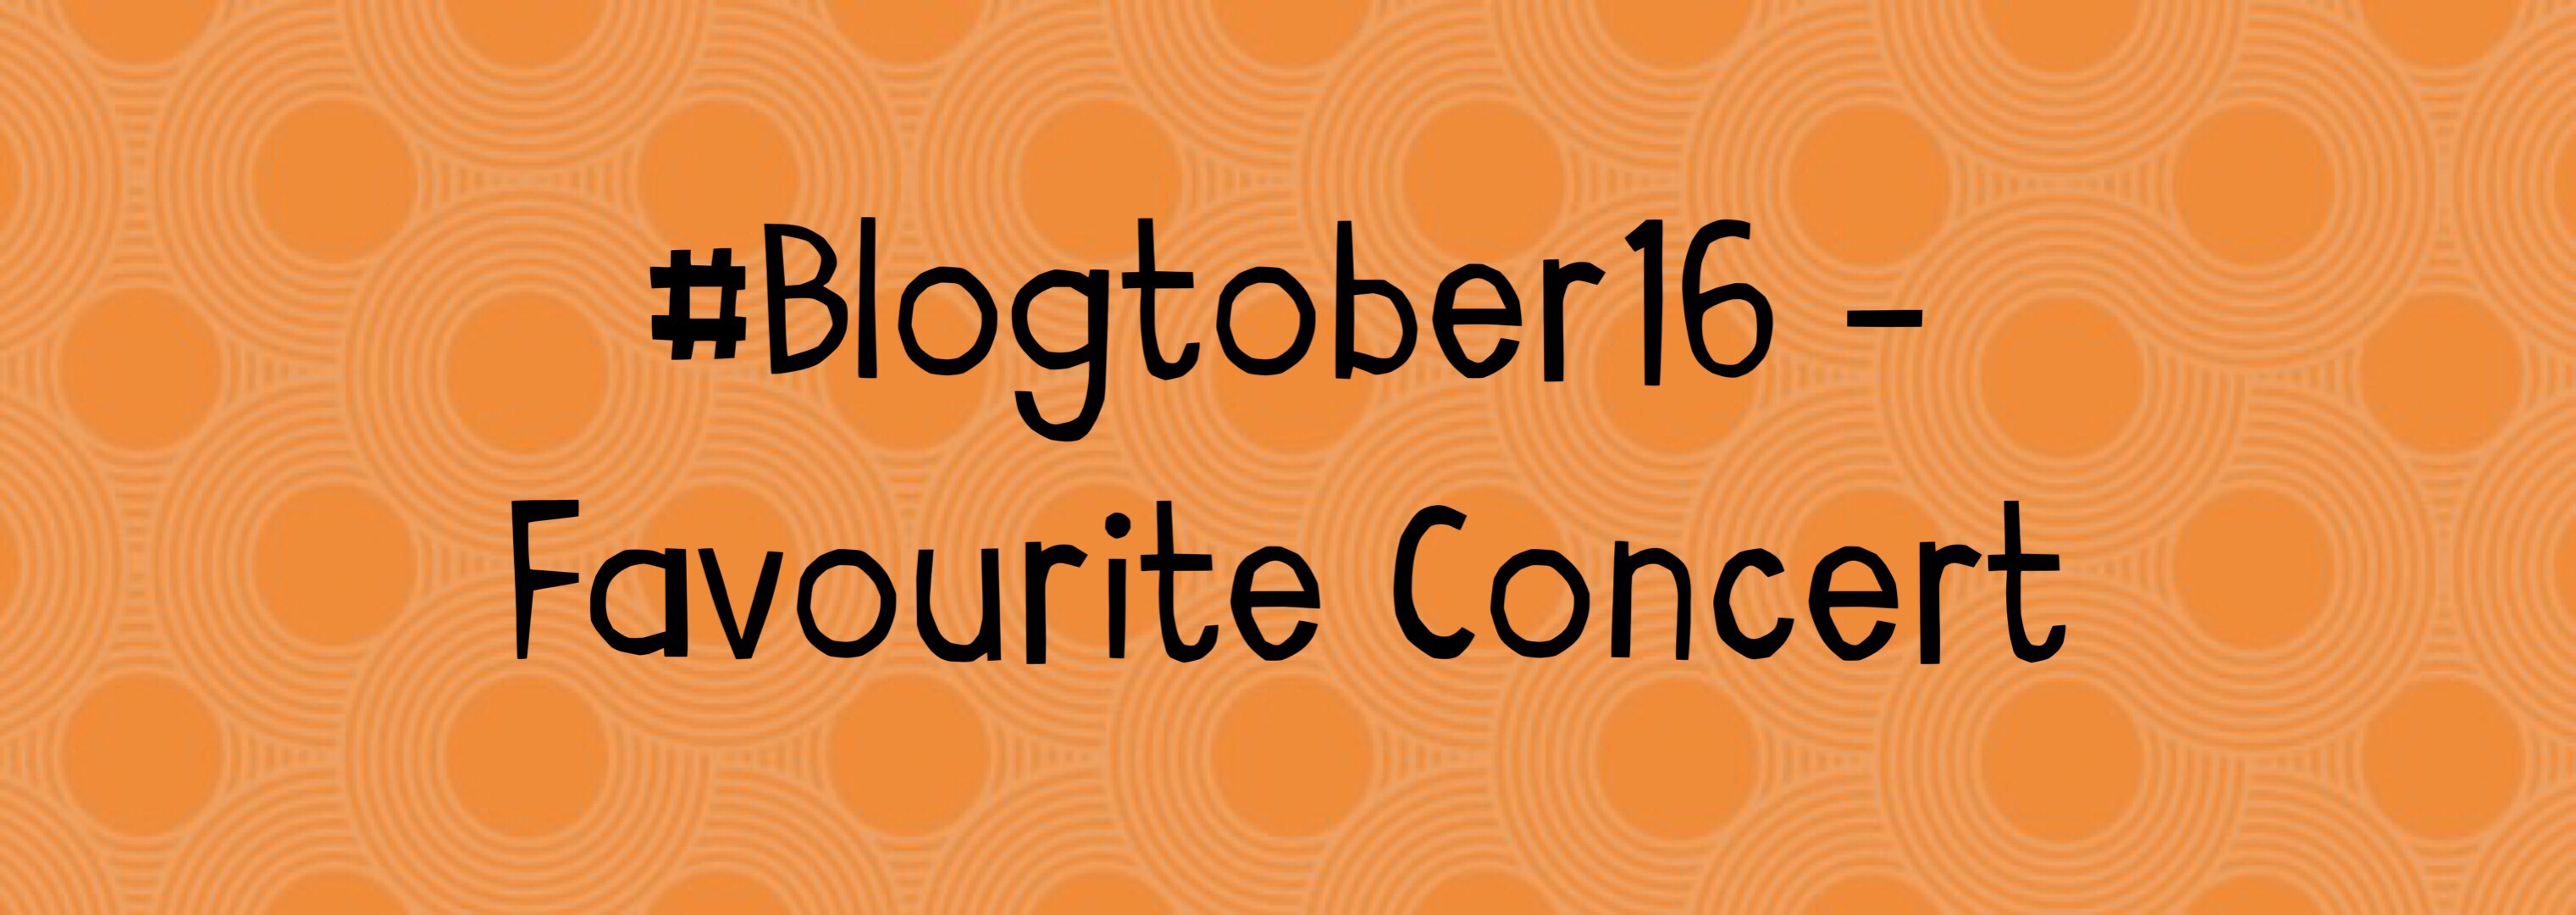 Favourite Concert You Attended – #Blogtober16 Day 17